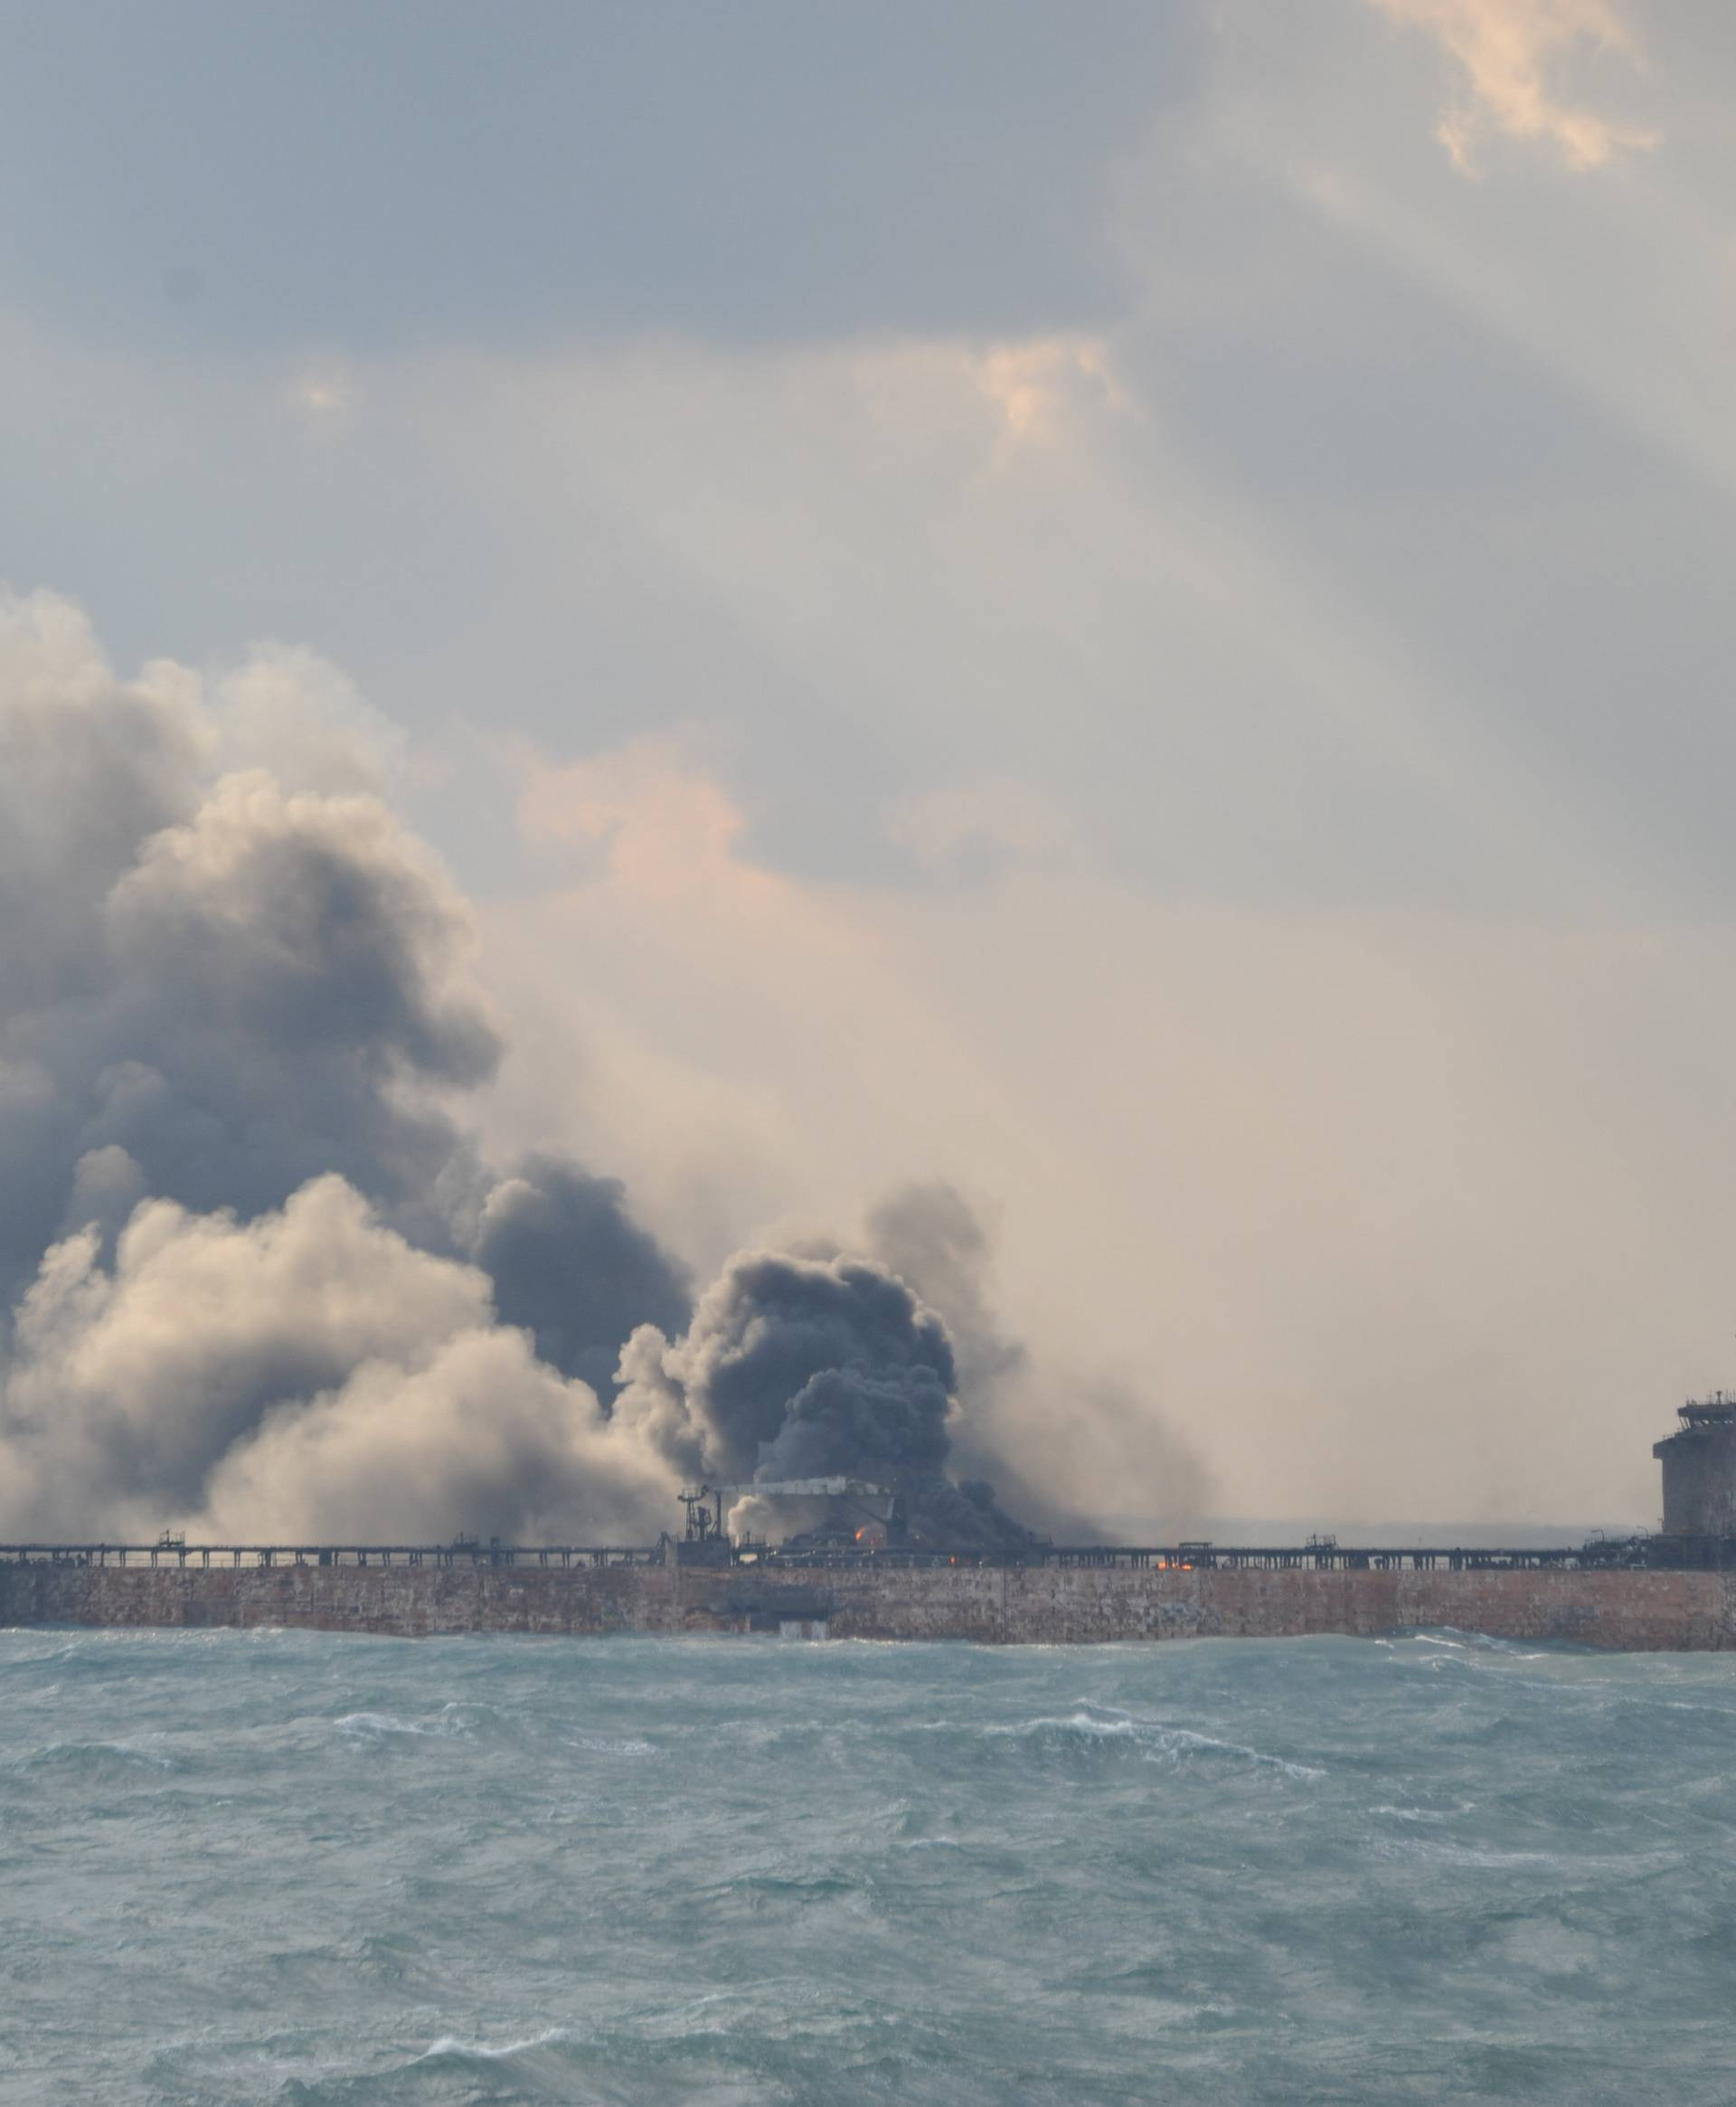 Smoke is seen from the Sanchi tanker which went ablaze after a collision with a Chinese freight ship in the East China Sea